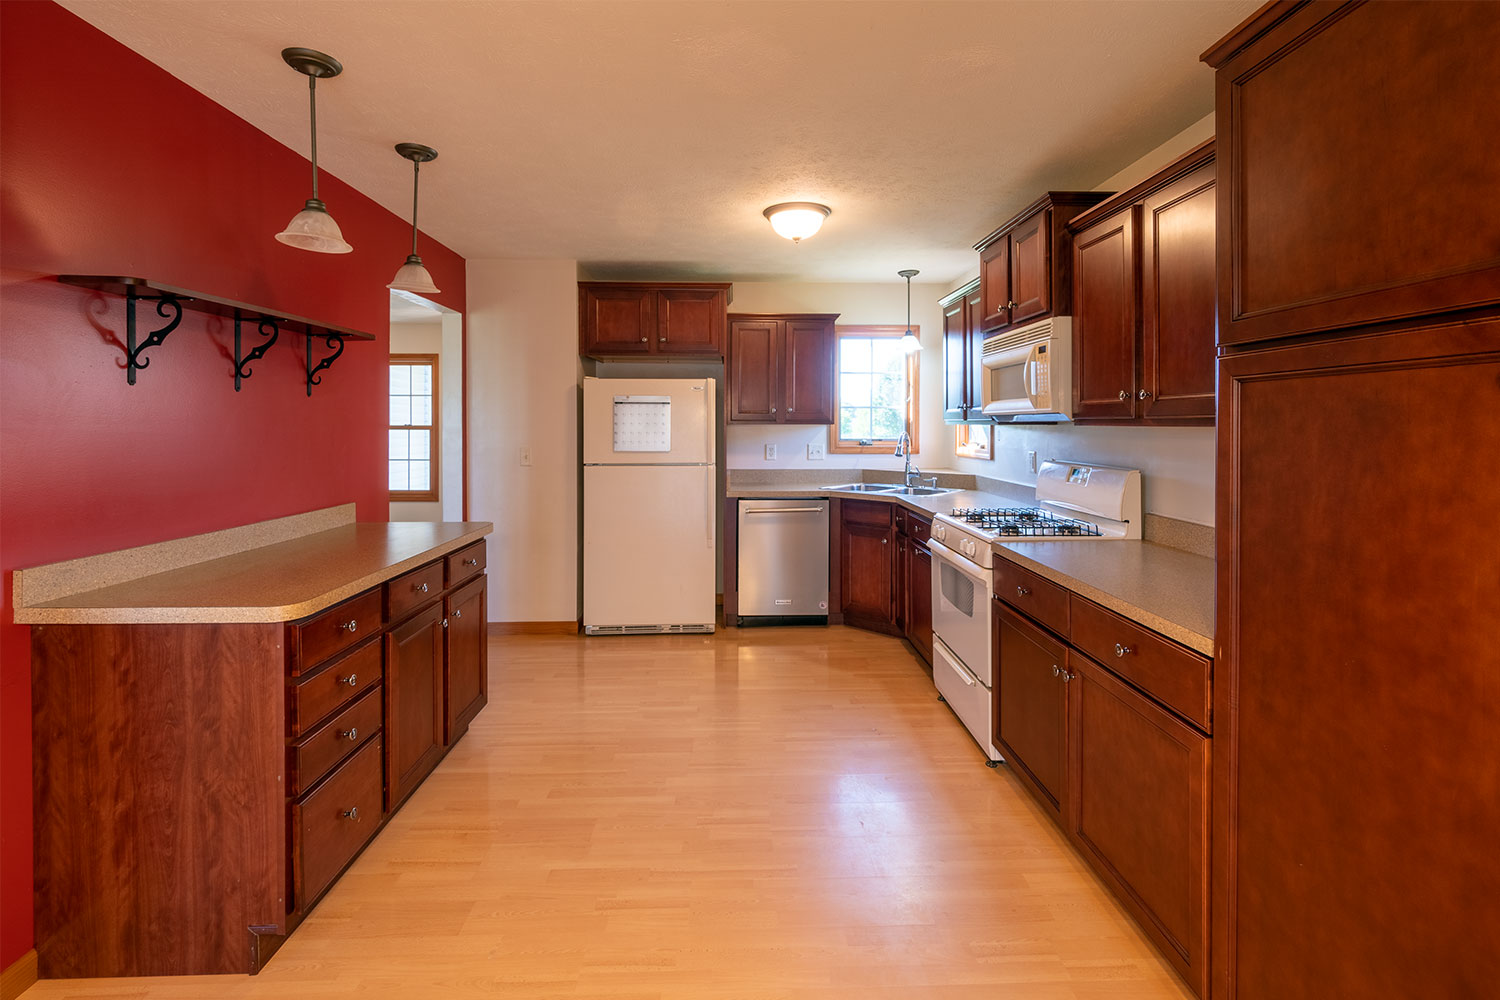 Real Estate Photography: Kitchen